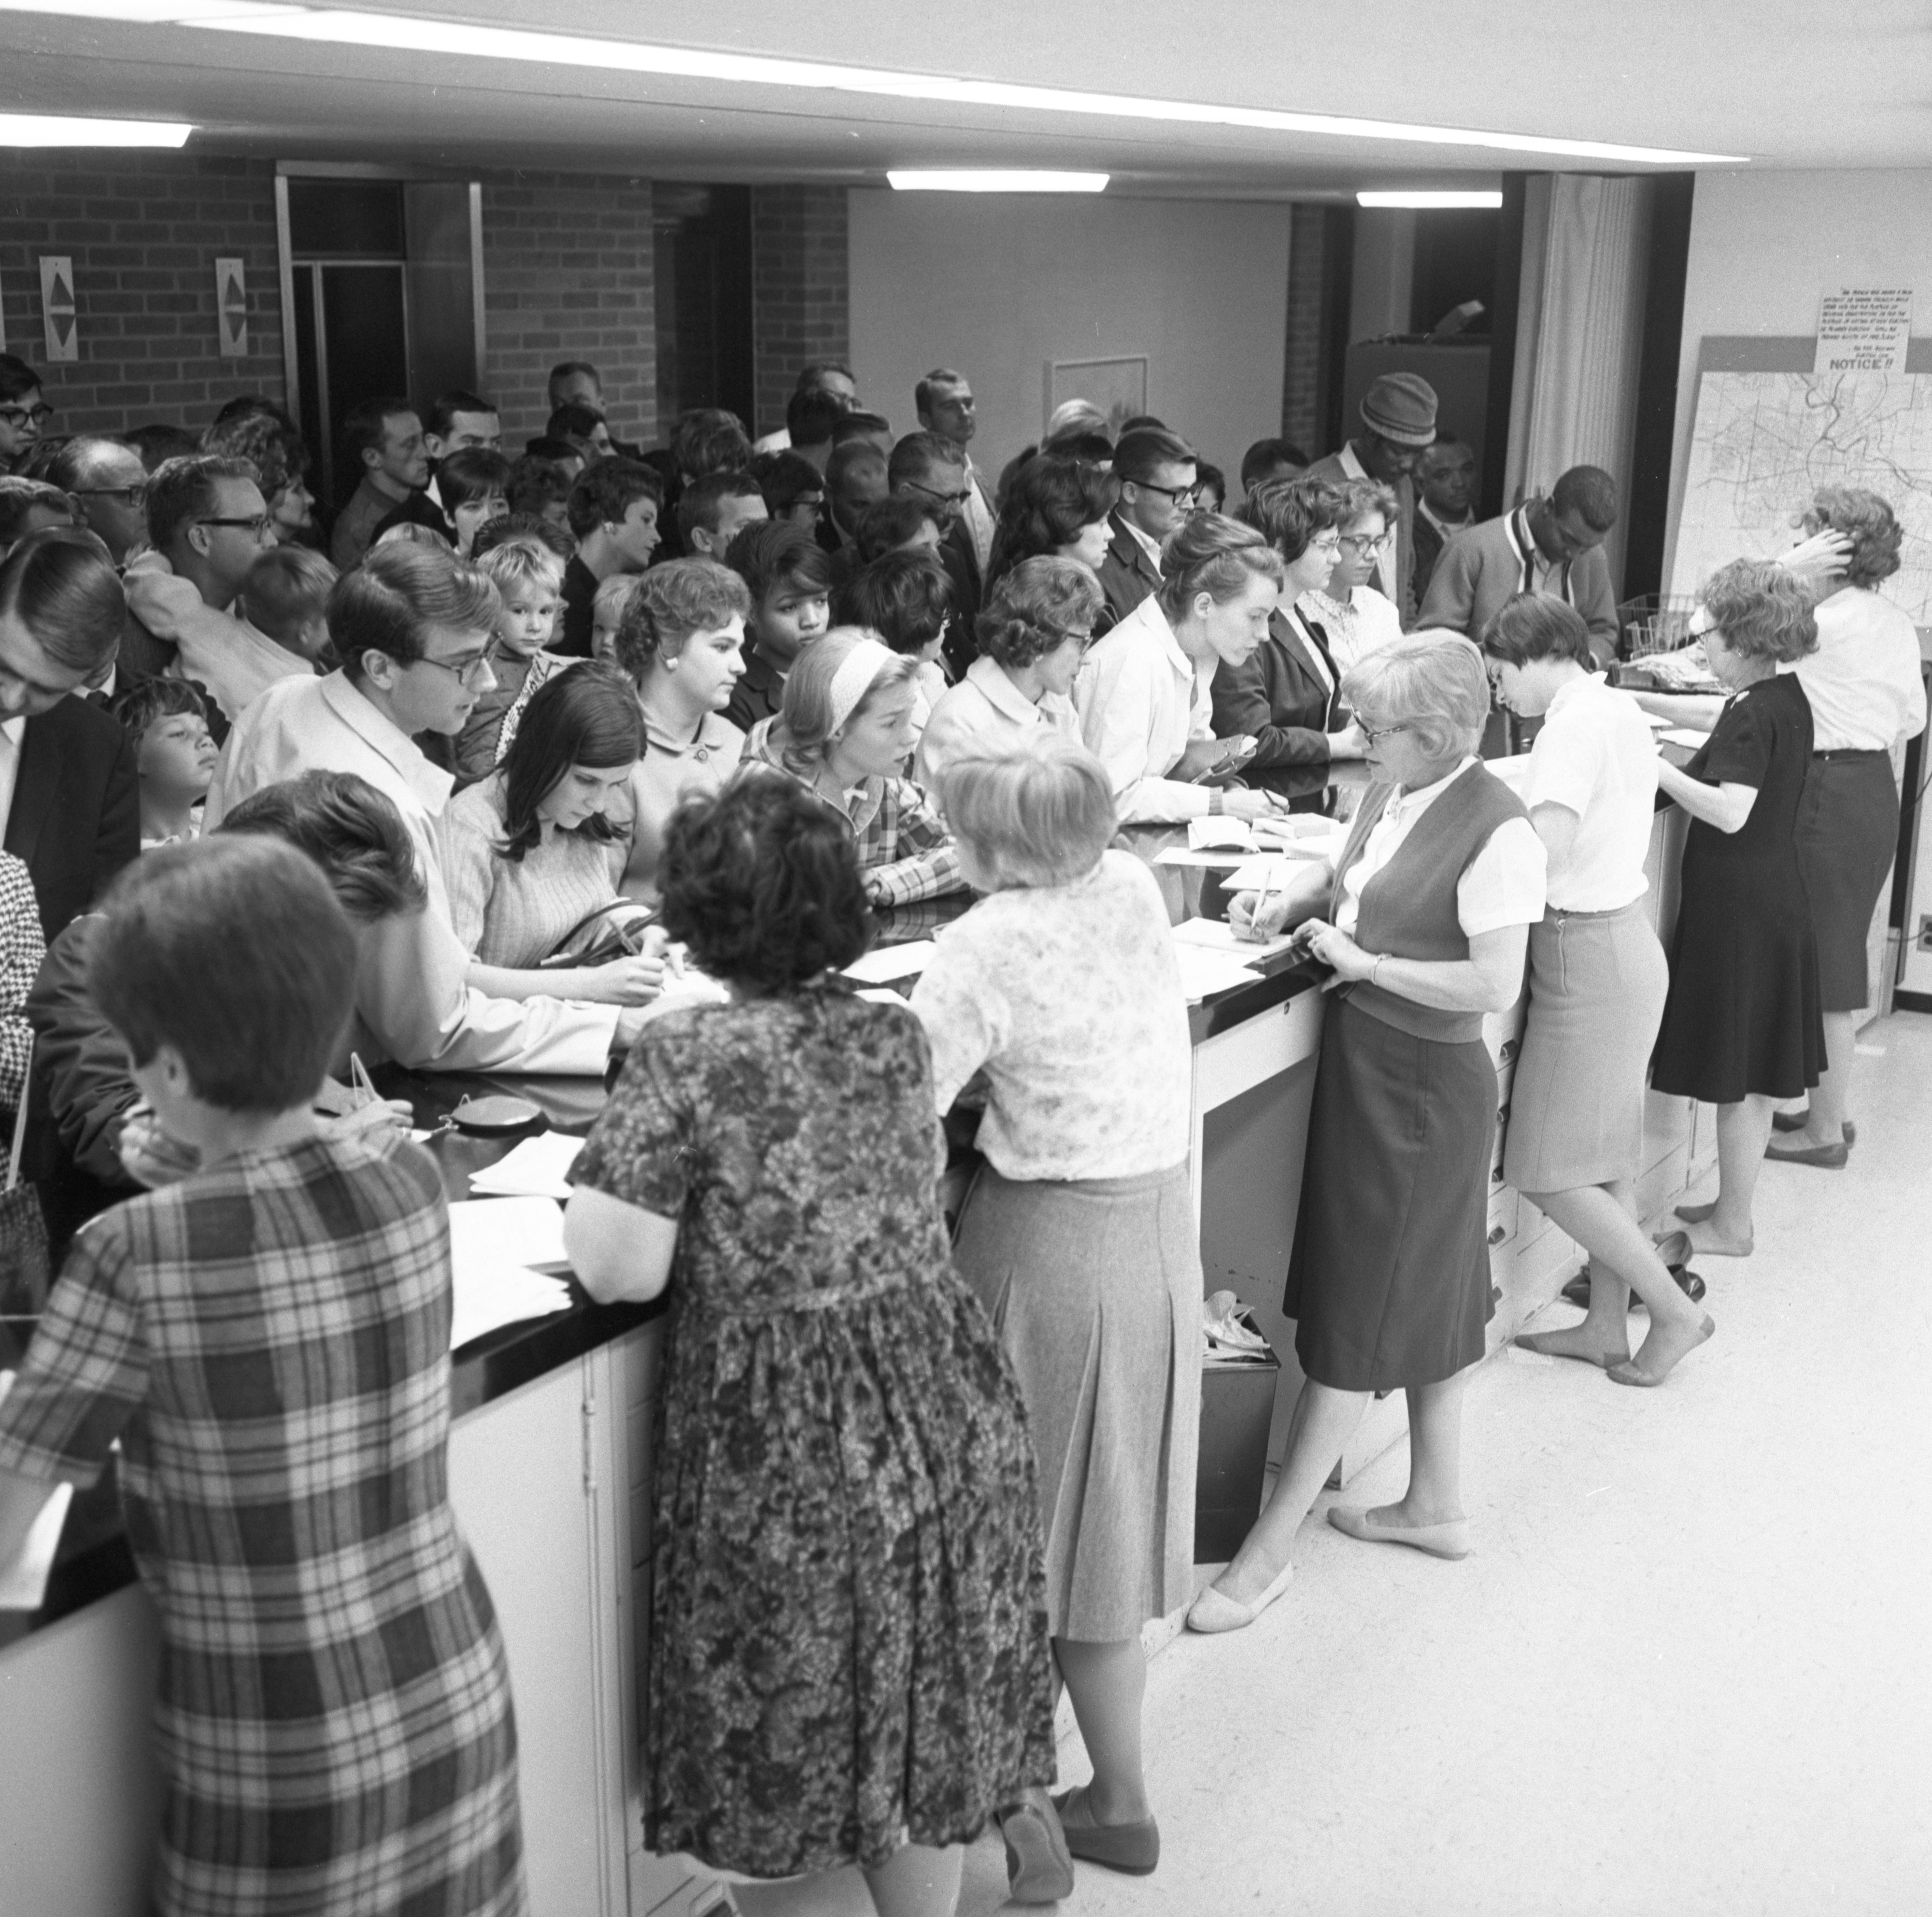 Ann Arbor City Clerk's Office Crowded For Last-Minute Voter Registration, October 1966 image